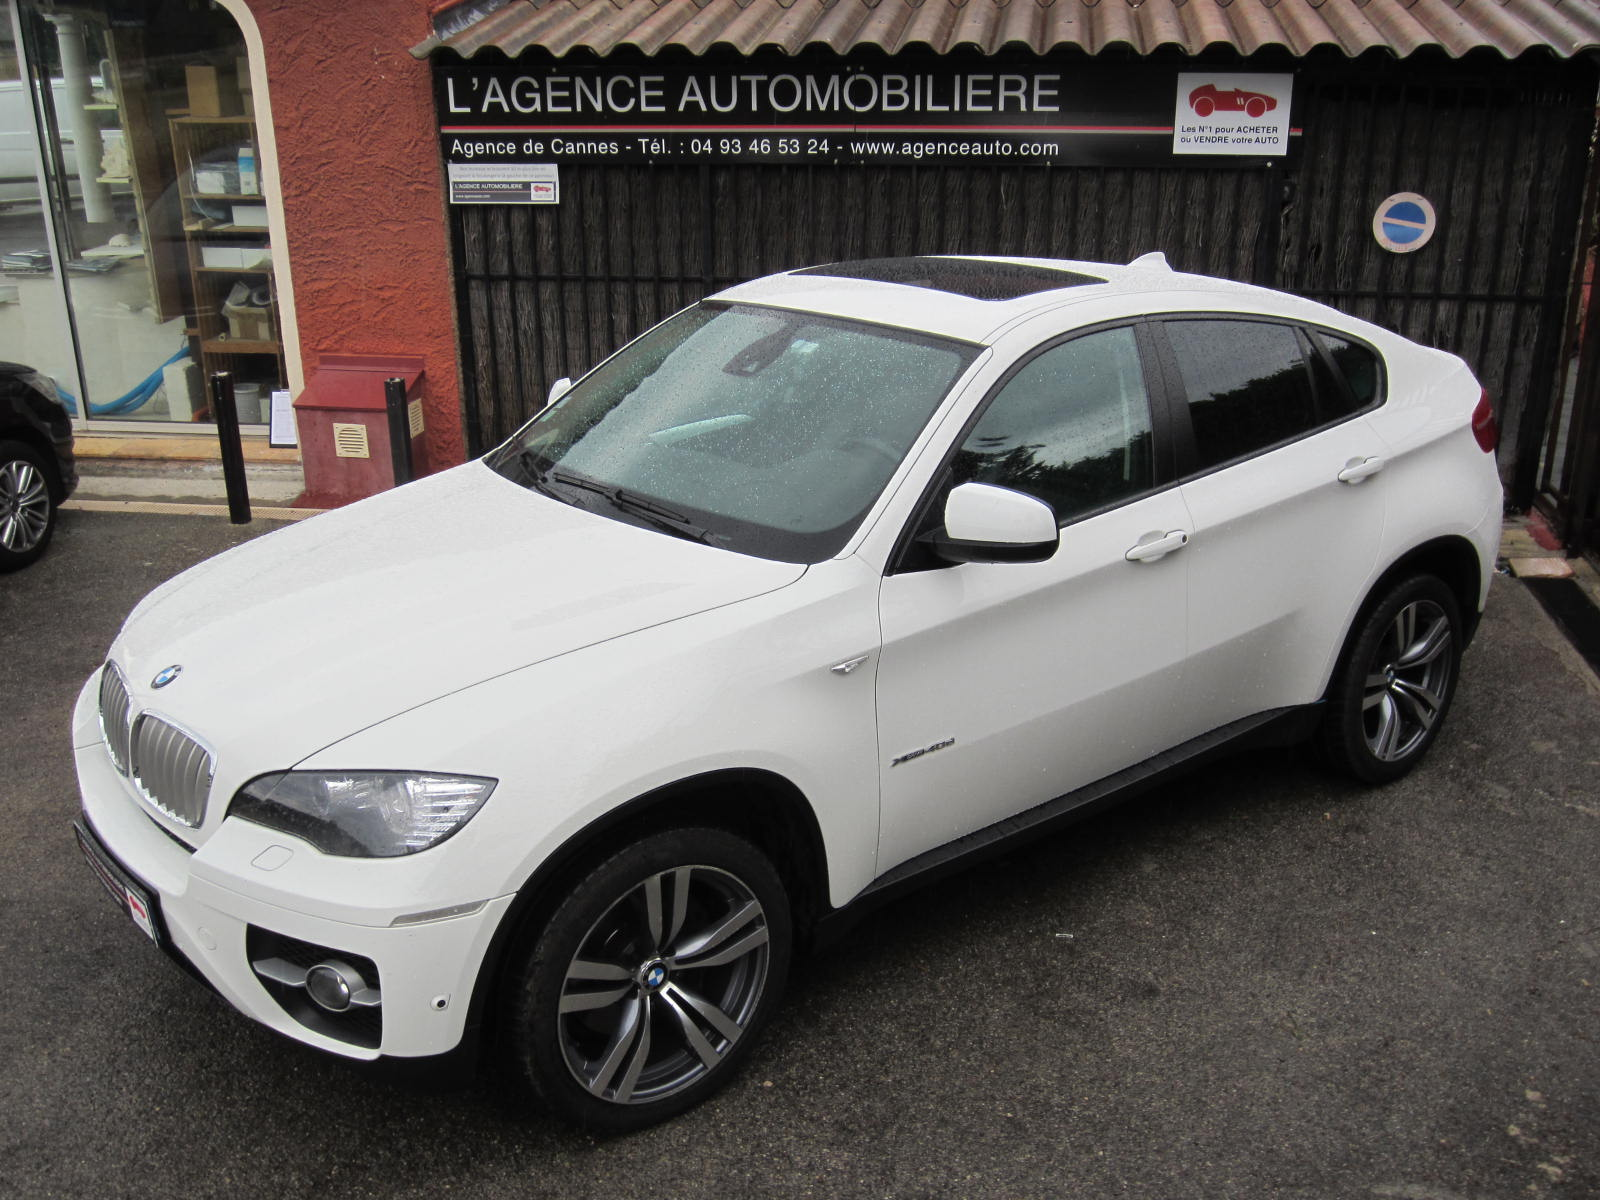 Bmw X6 4 0d Xdrive Luxe Occasion Cannes Pas Cher Voiture Occasion Alpes Maritimes 06 Agence Auto